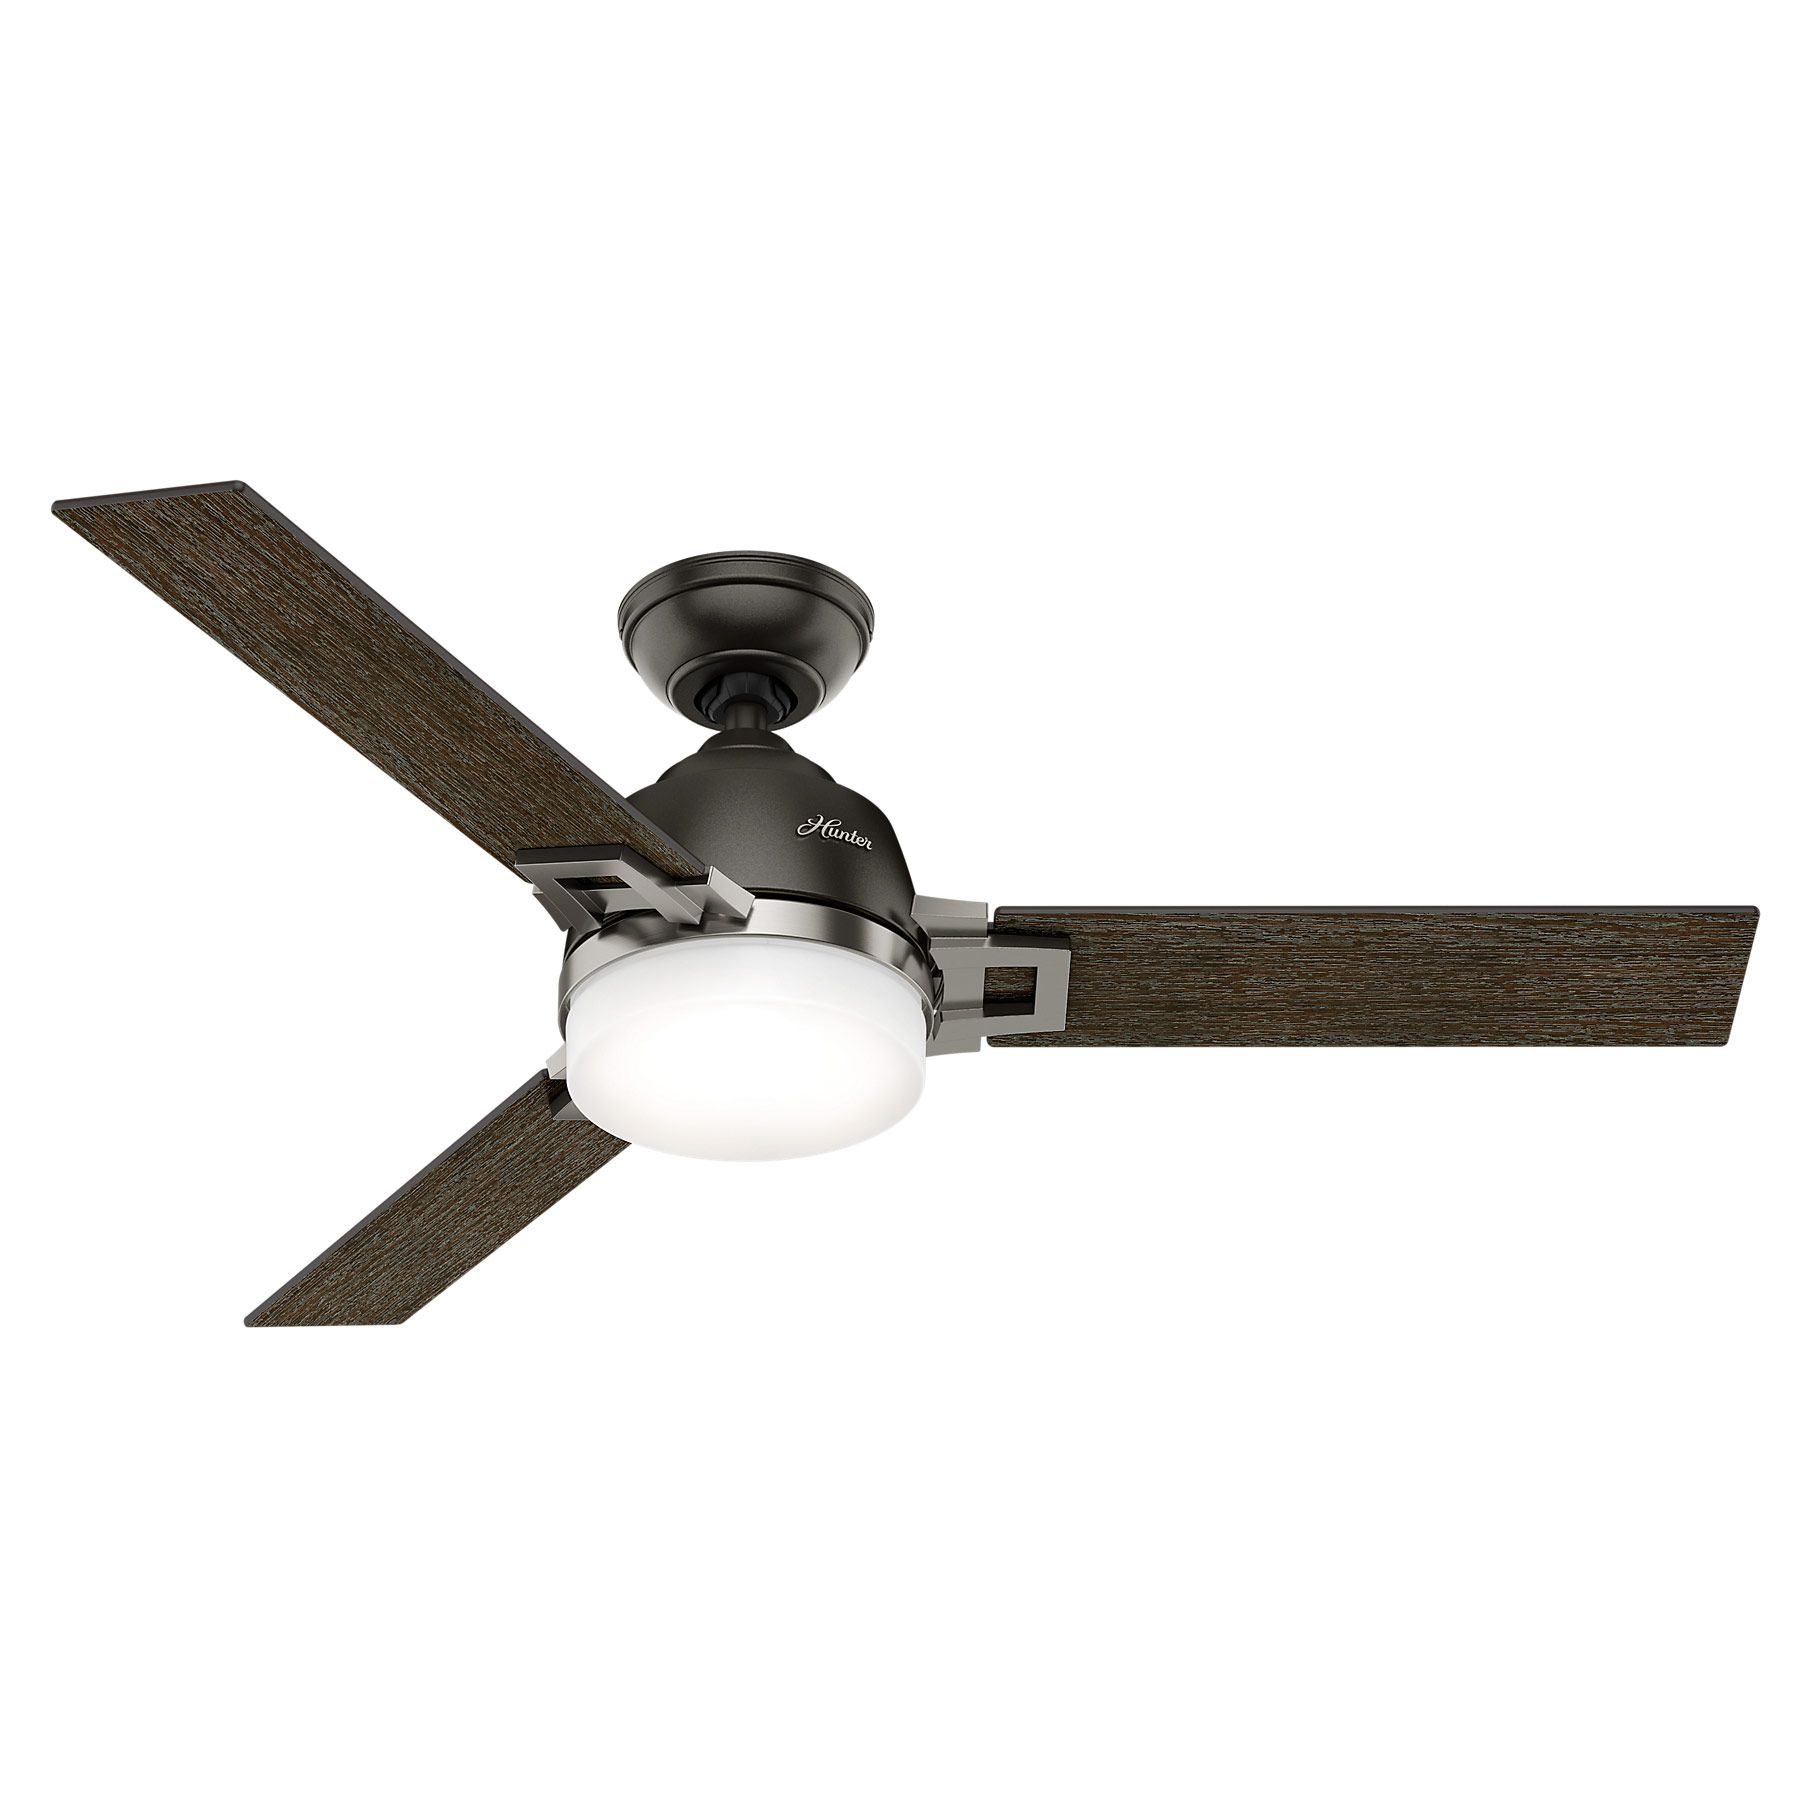 Leoni Ceiling Fan With Light By Hunter Fan Hun 59219 With Images Ceiling Fan With Light Bronze Ceiling Fan Ceiling Fan With Remote